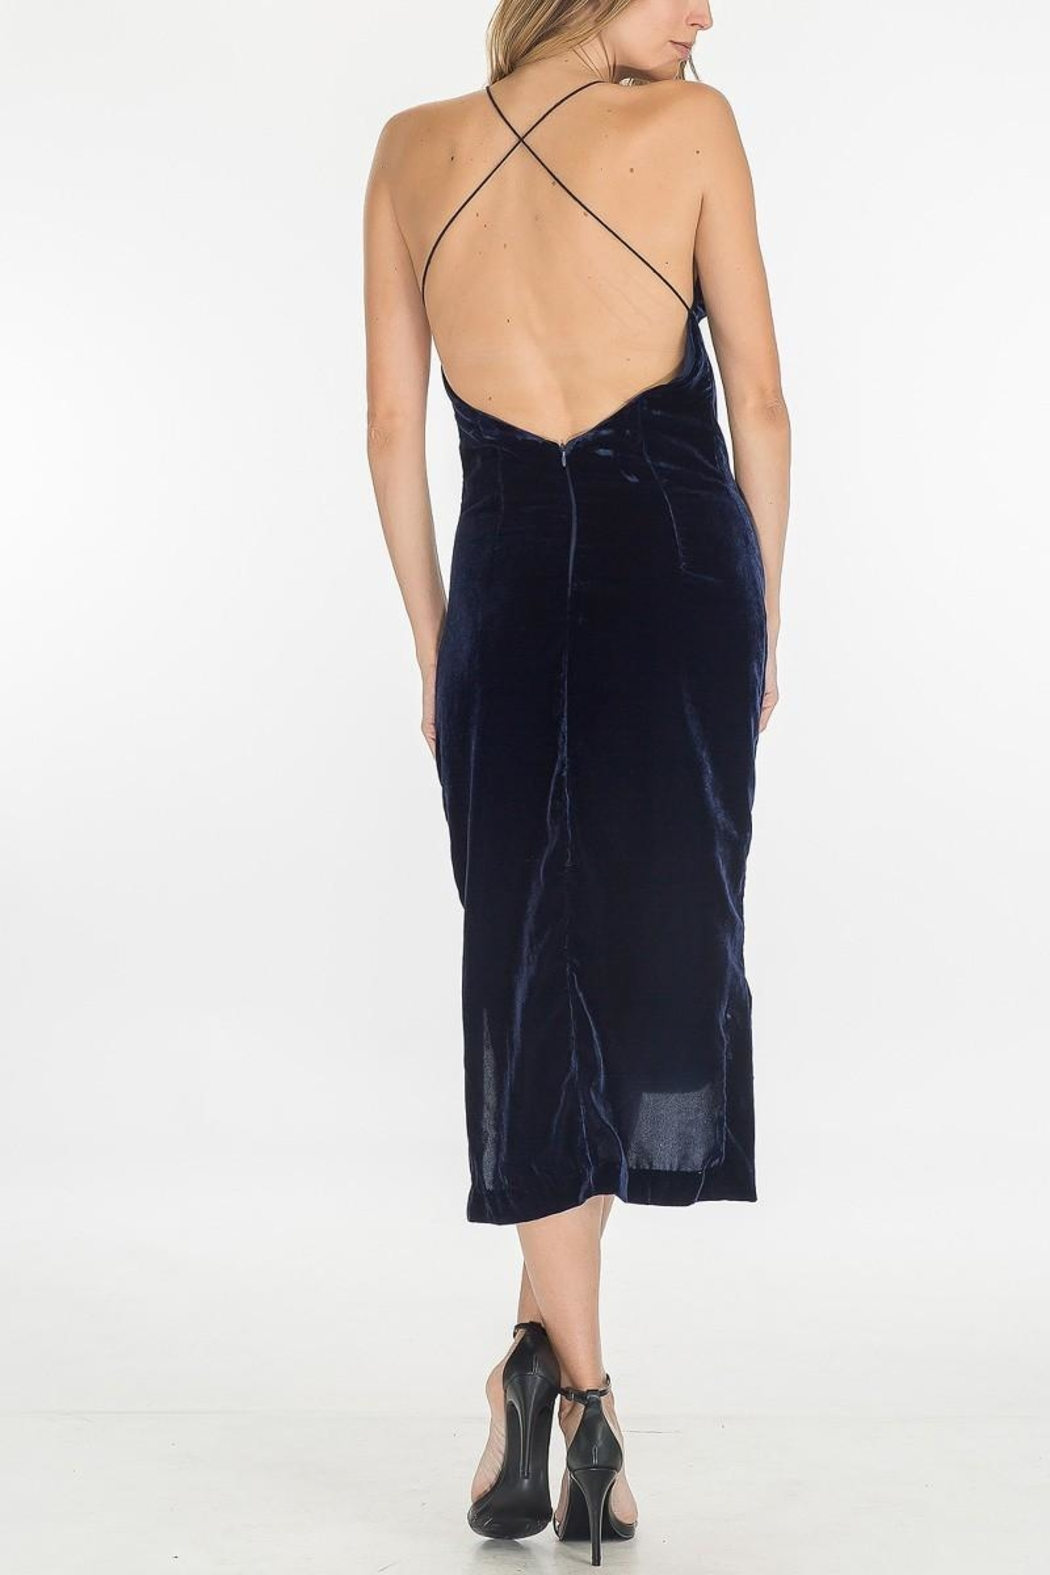 Olivaceous Velvet Slip Dress - Side Cropped Image